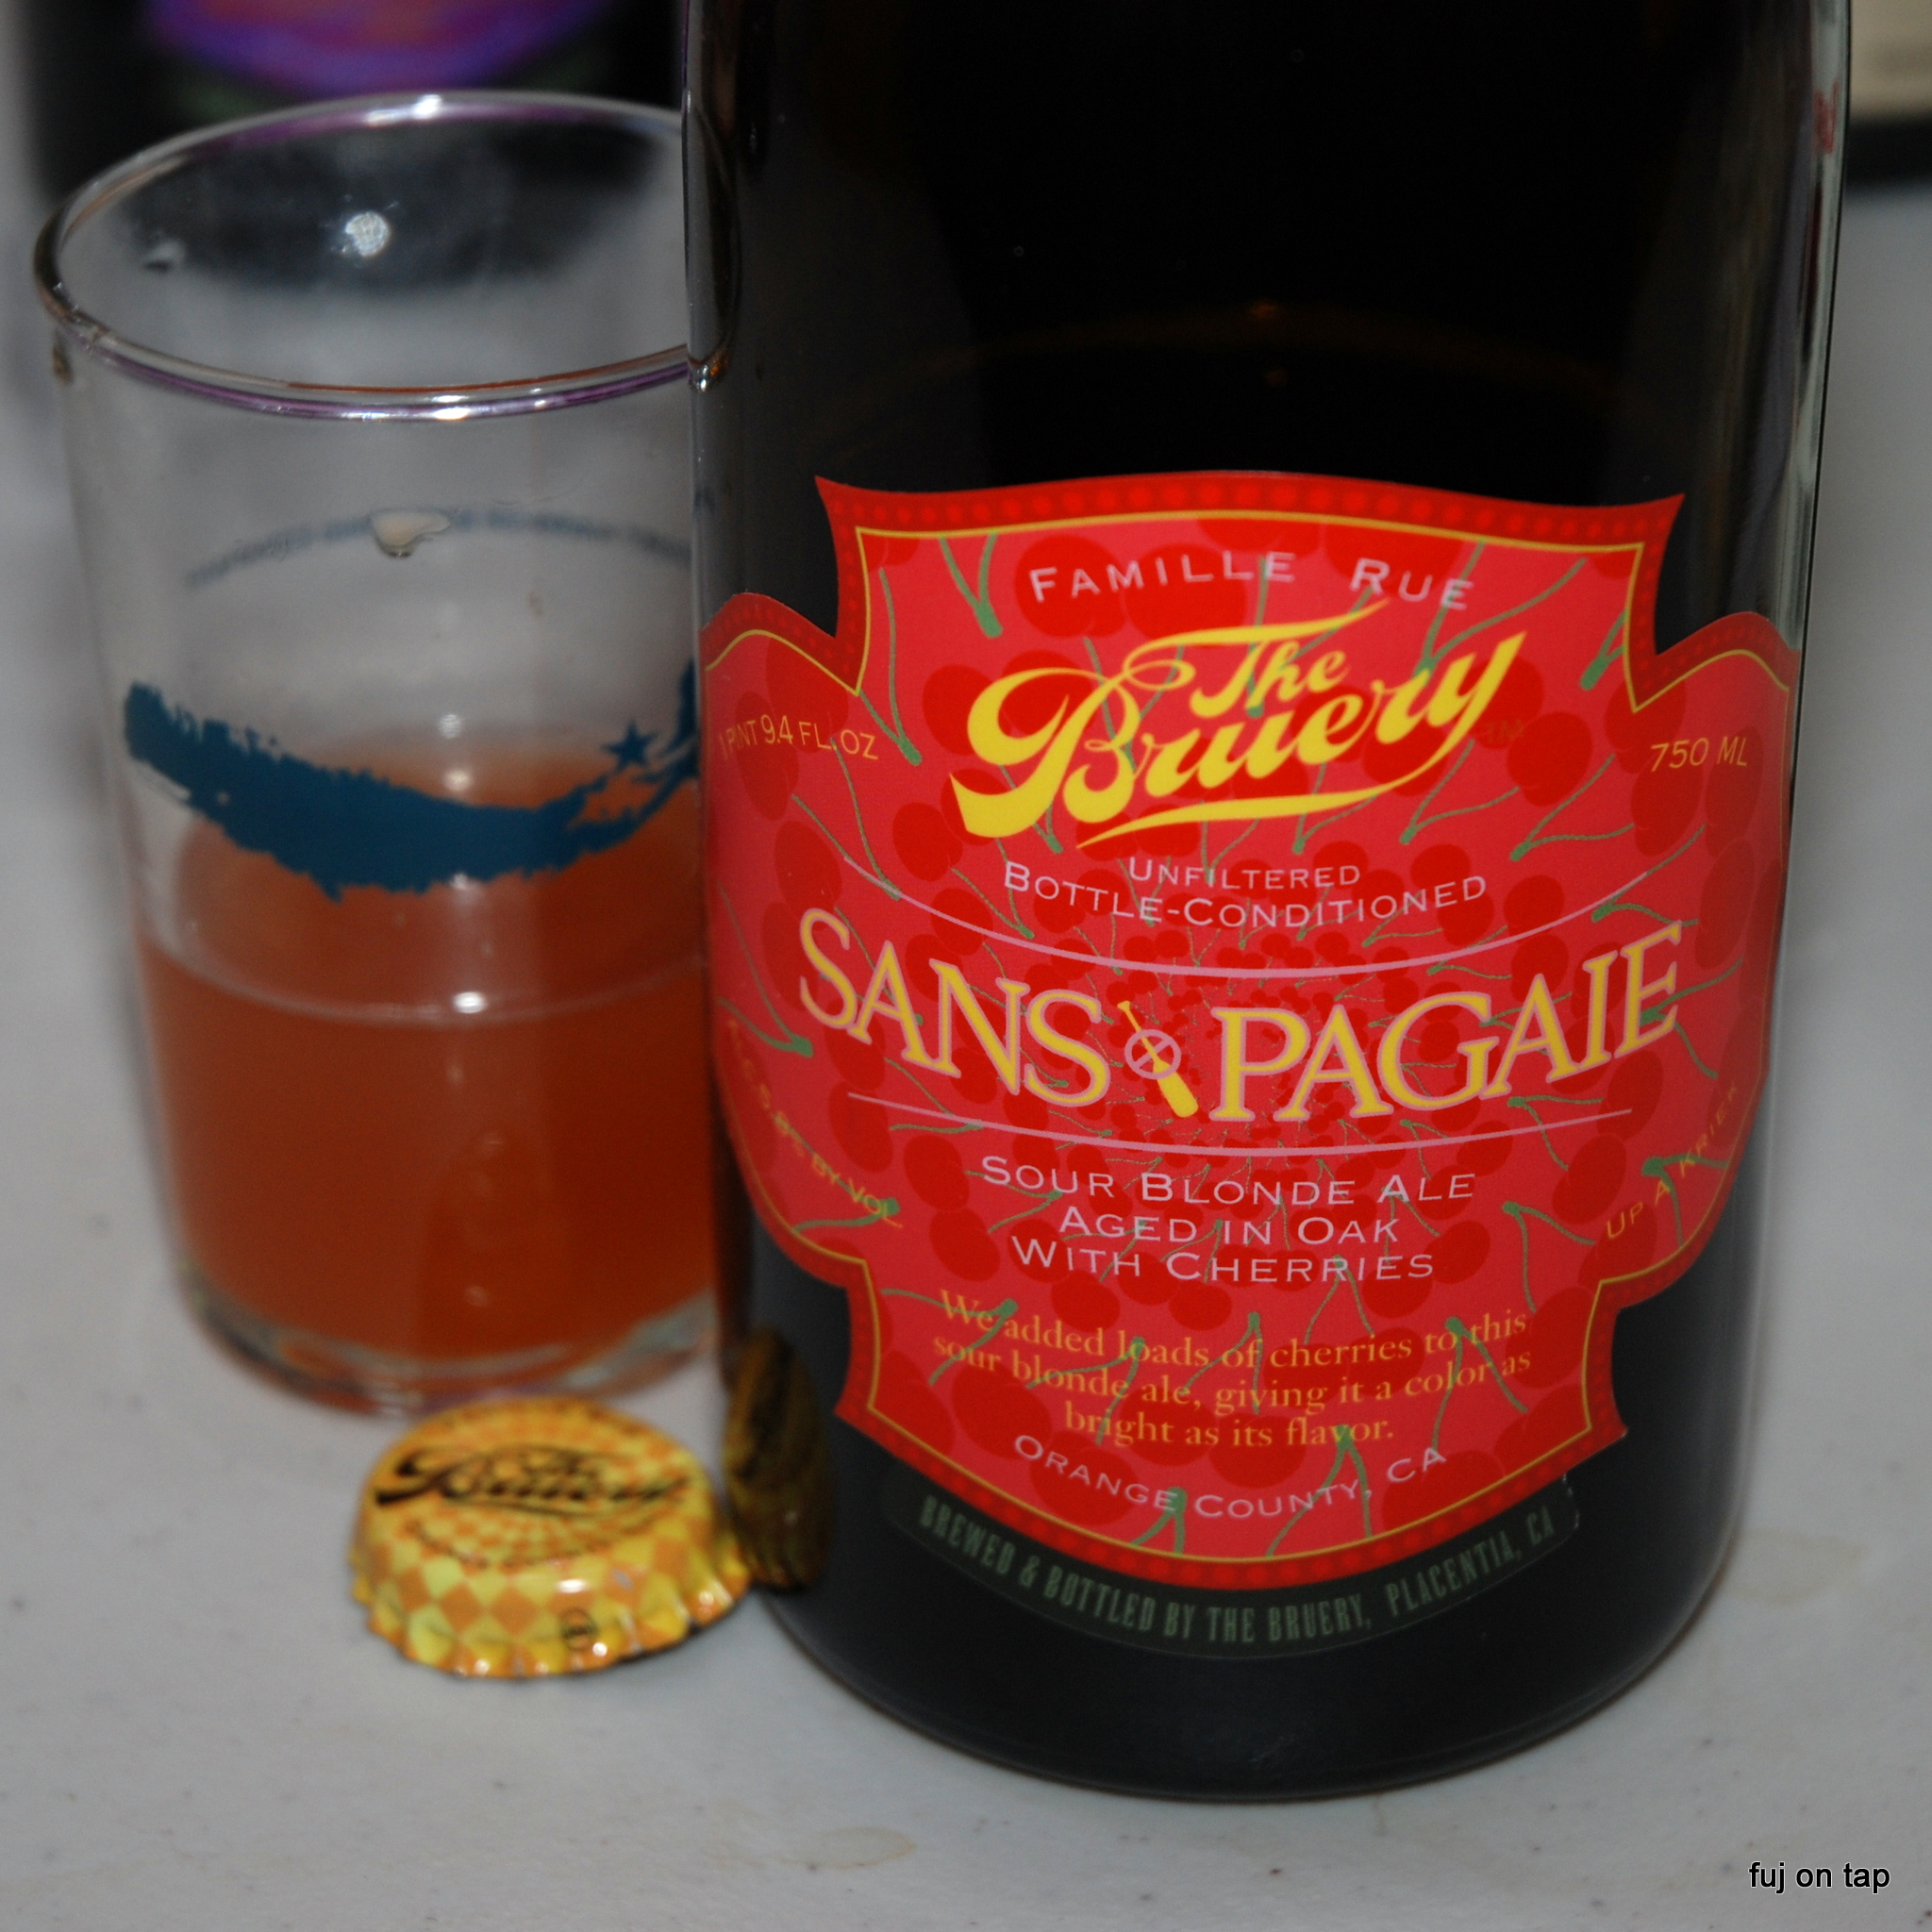 Sans Pagaie by The Bruery